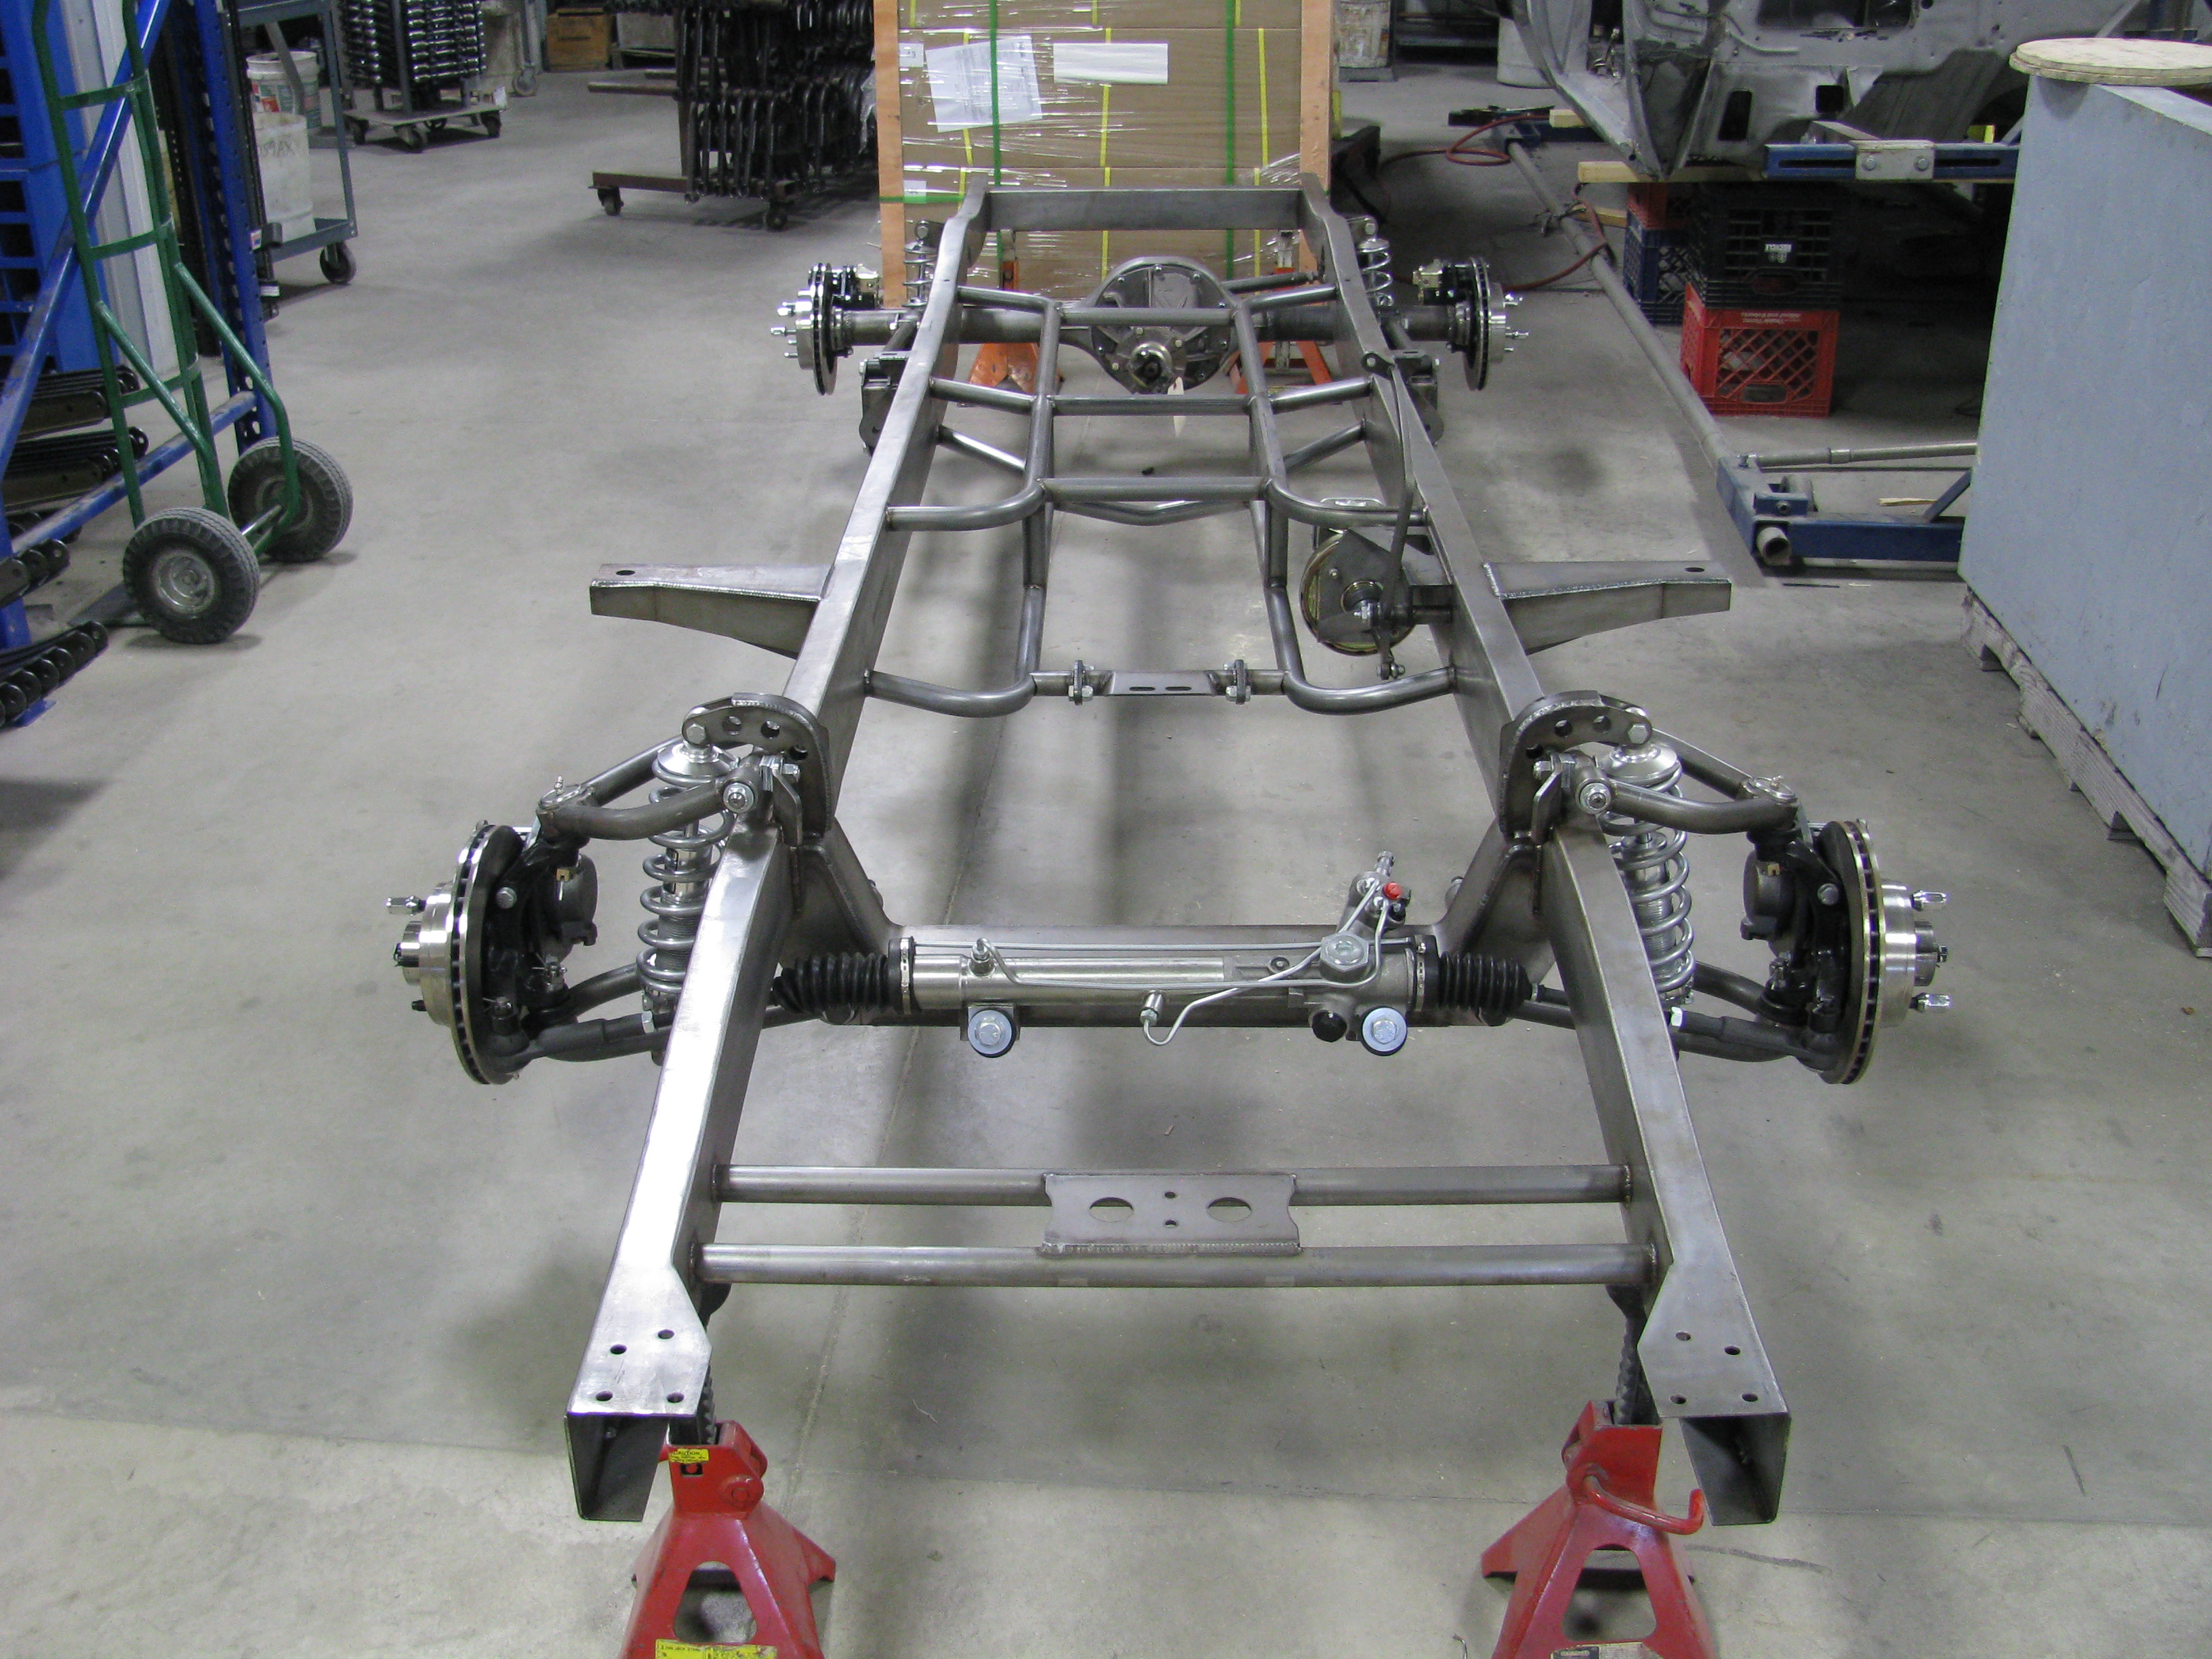 1954 Ford F100 truck chassis - Cruisin Automotive